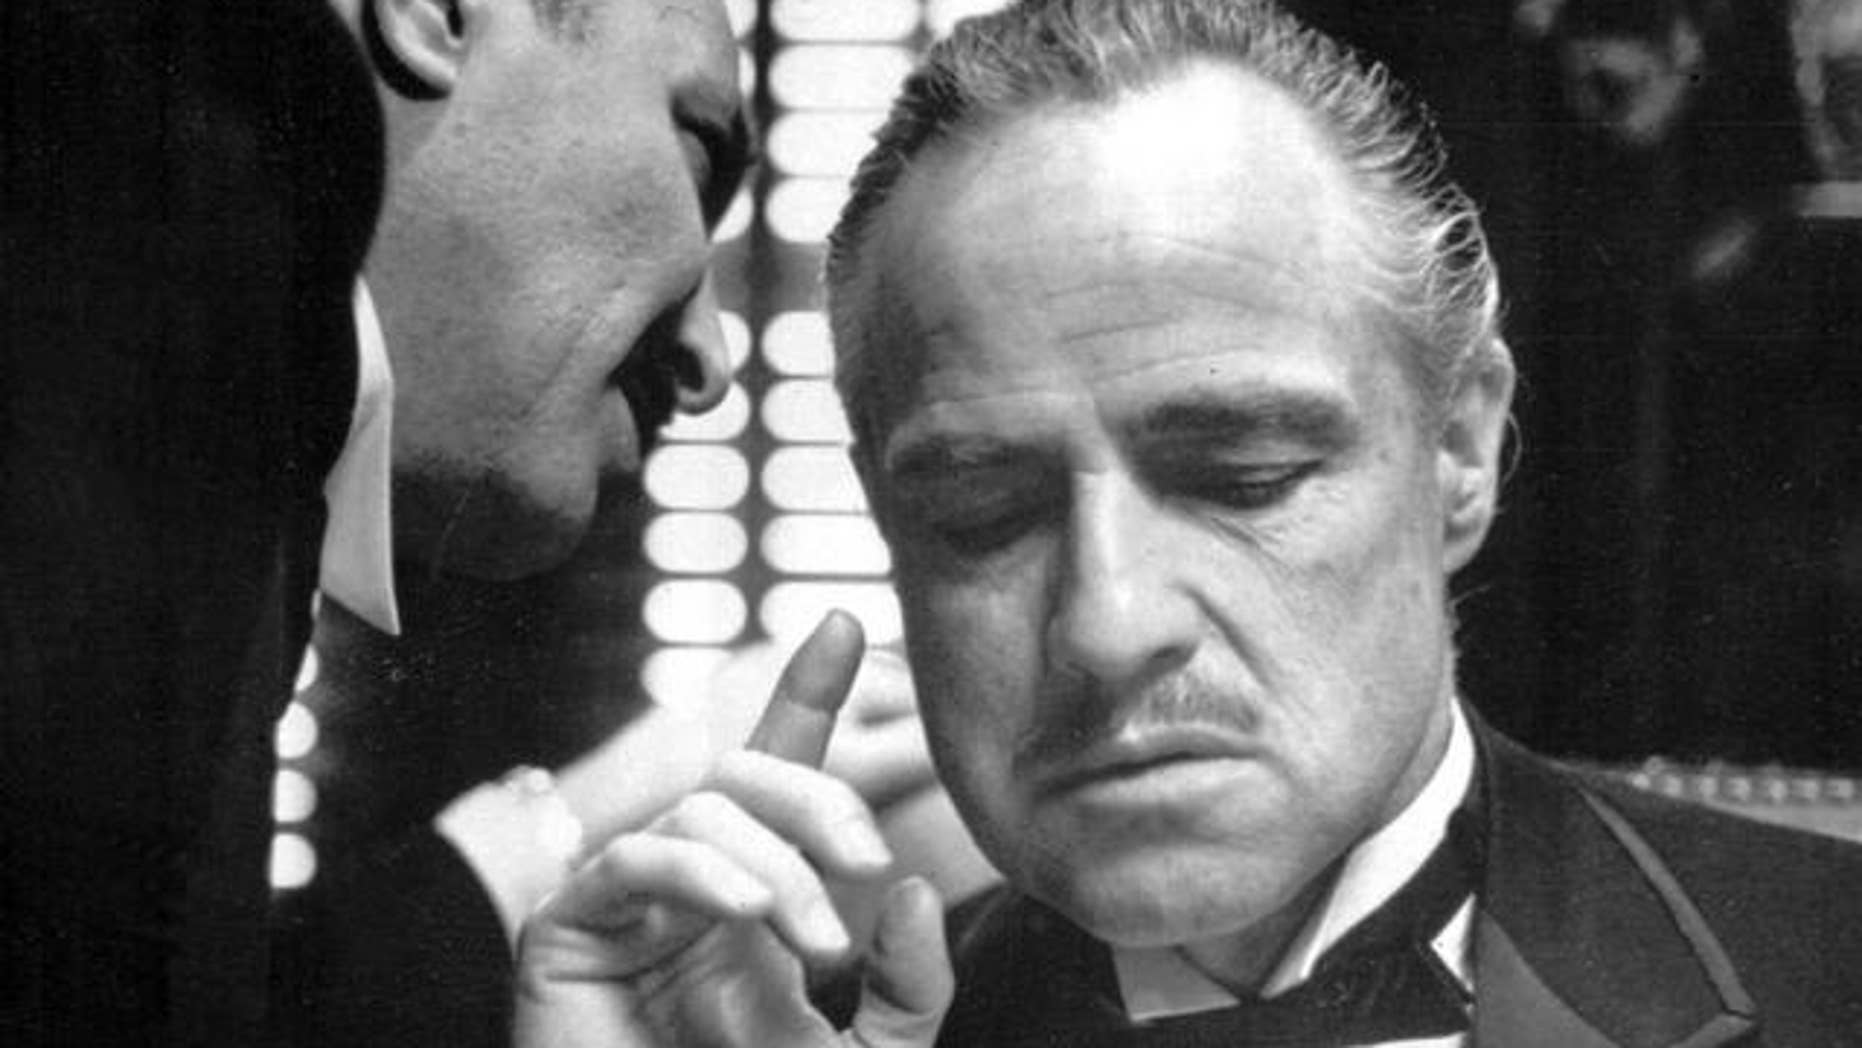 It's hard to imagine a judge taking Michael or Sonny away from Don Corleone, although Fredo may have been available.